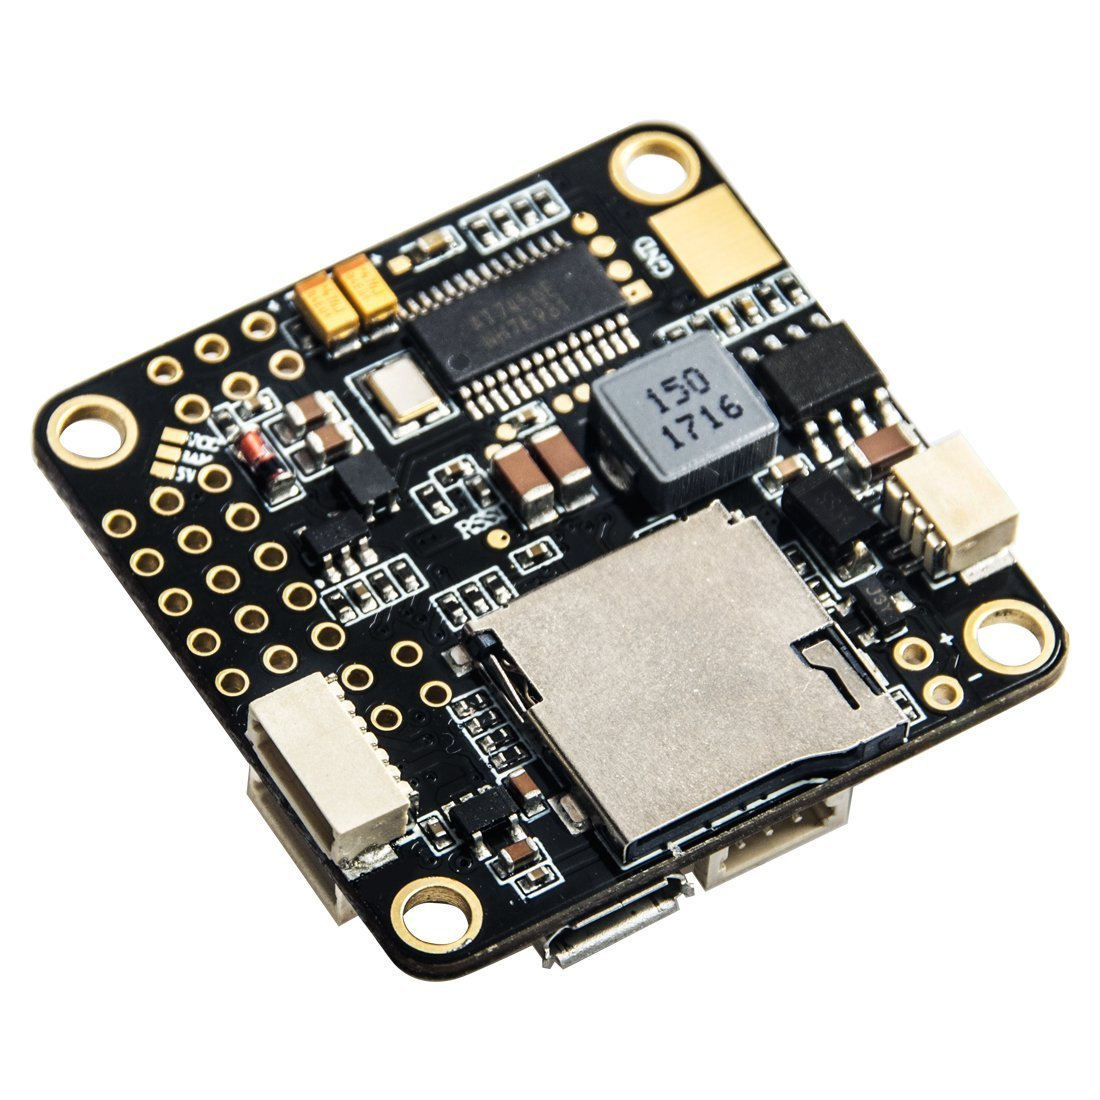 Omnibus F4 V2 Pro Flight Controller With Sd Card Slot Bec Robu For Rc Car Wiring Diagram